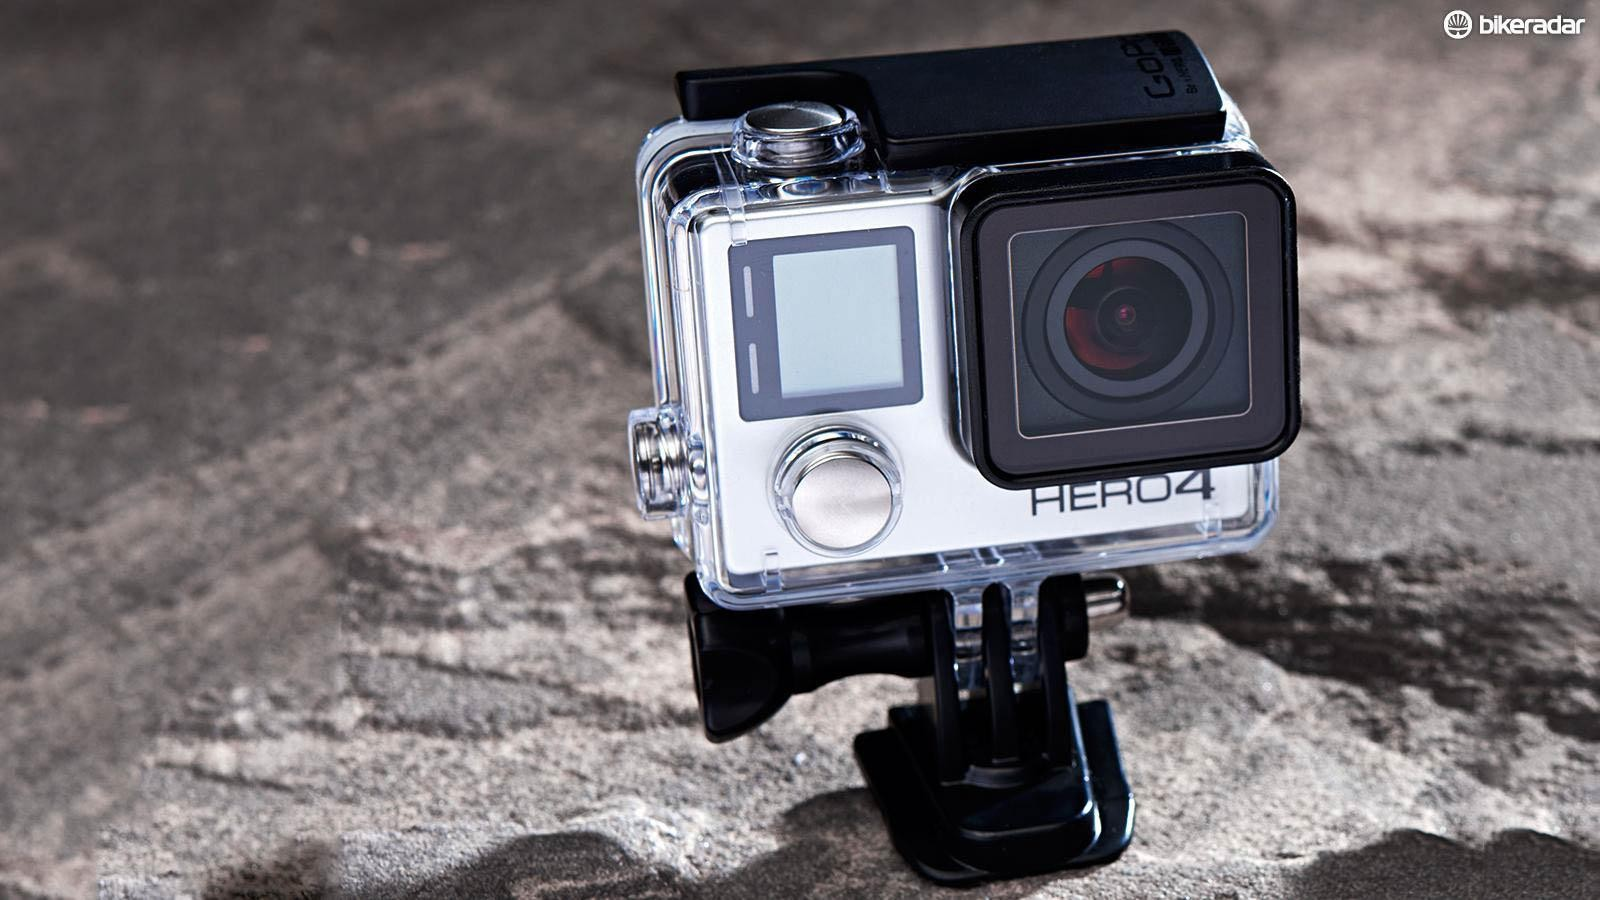 The GoPro Hero 4 Silver has excellent picture quality, usability and battery life